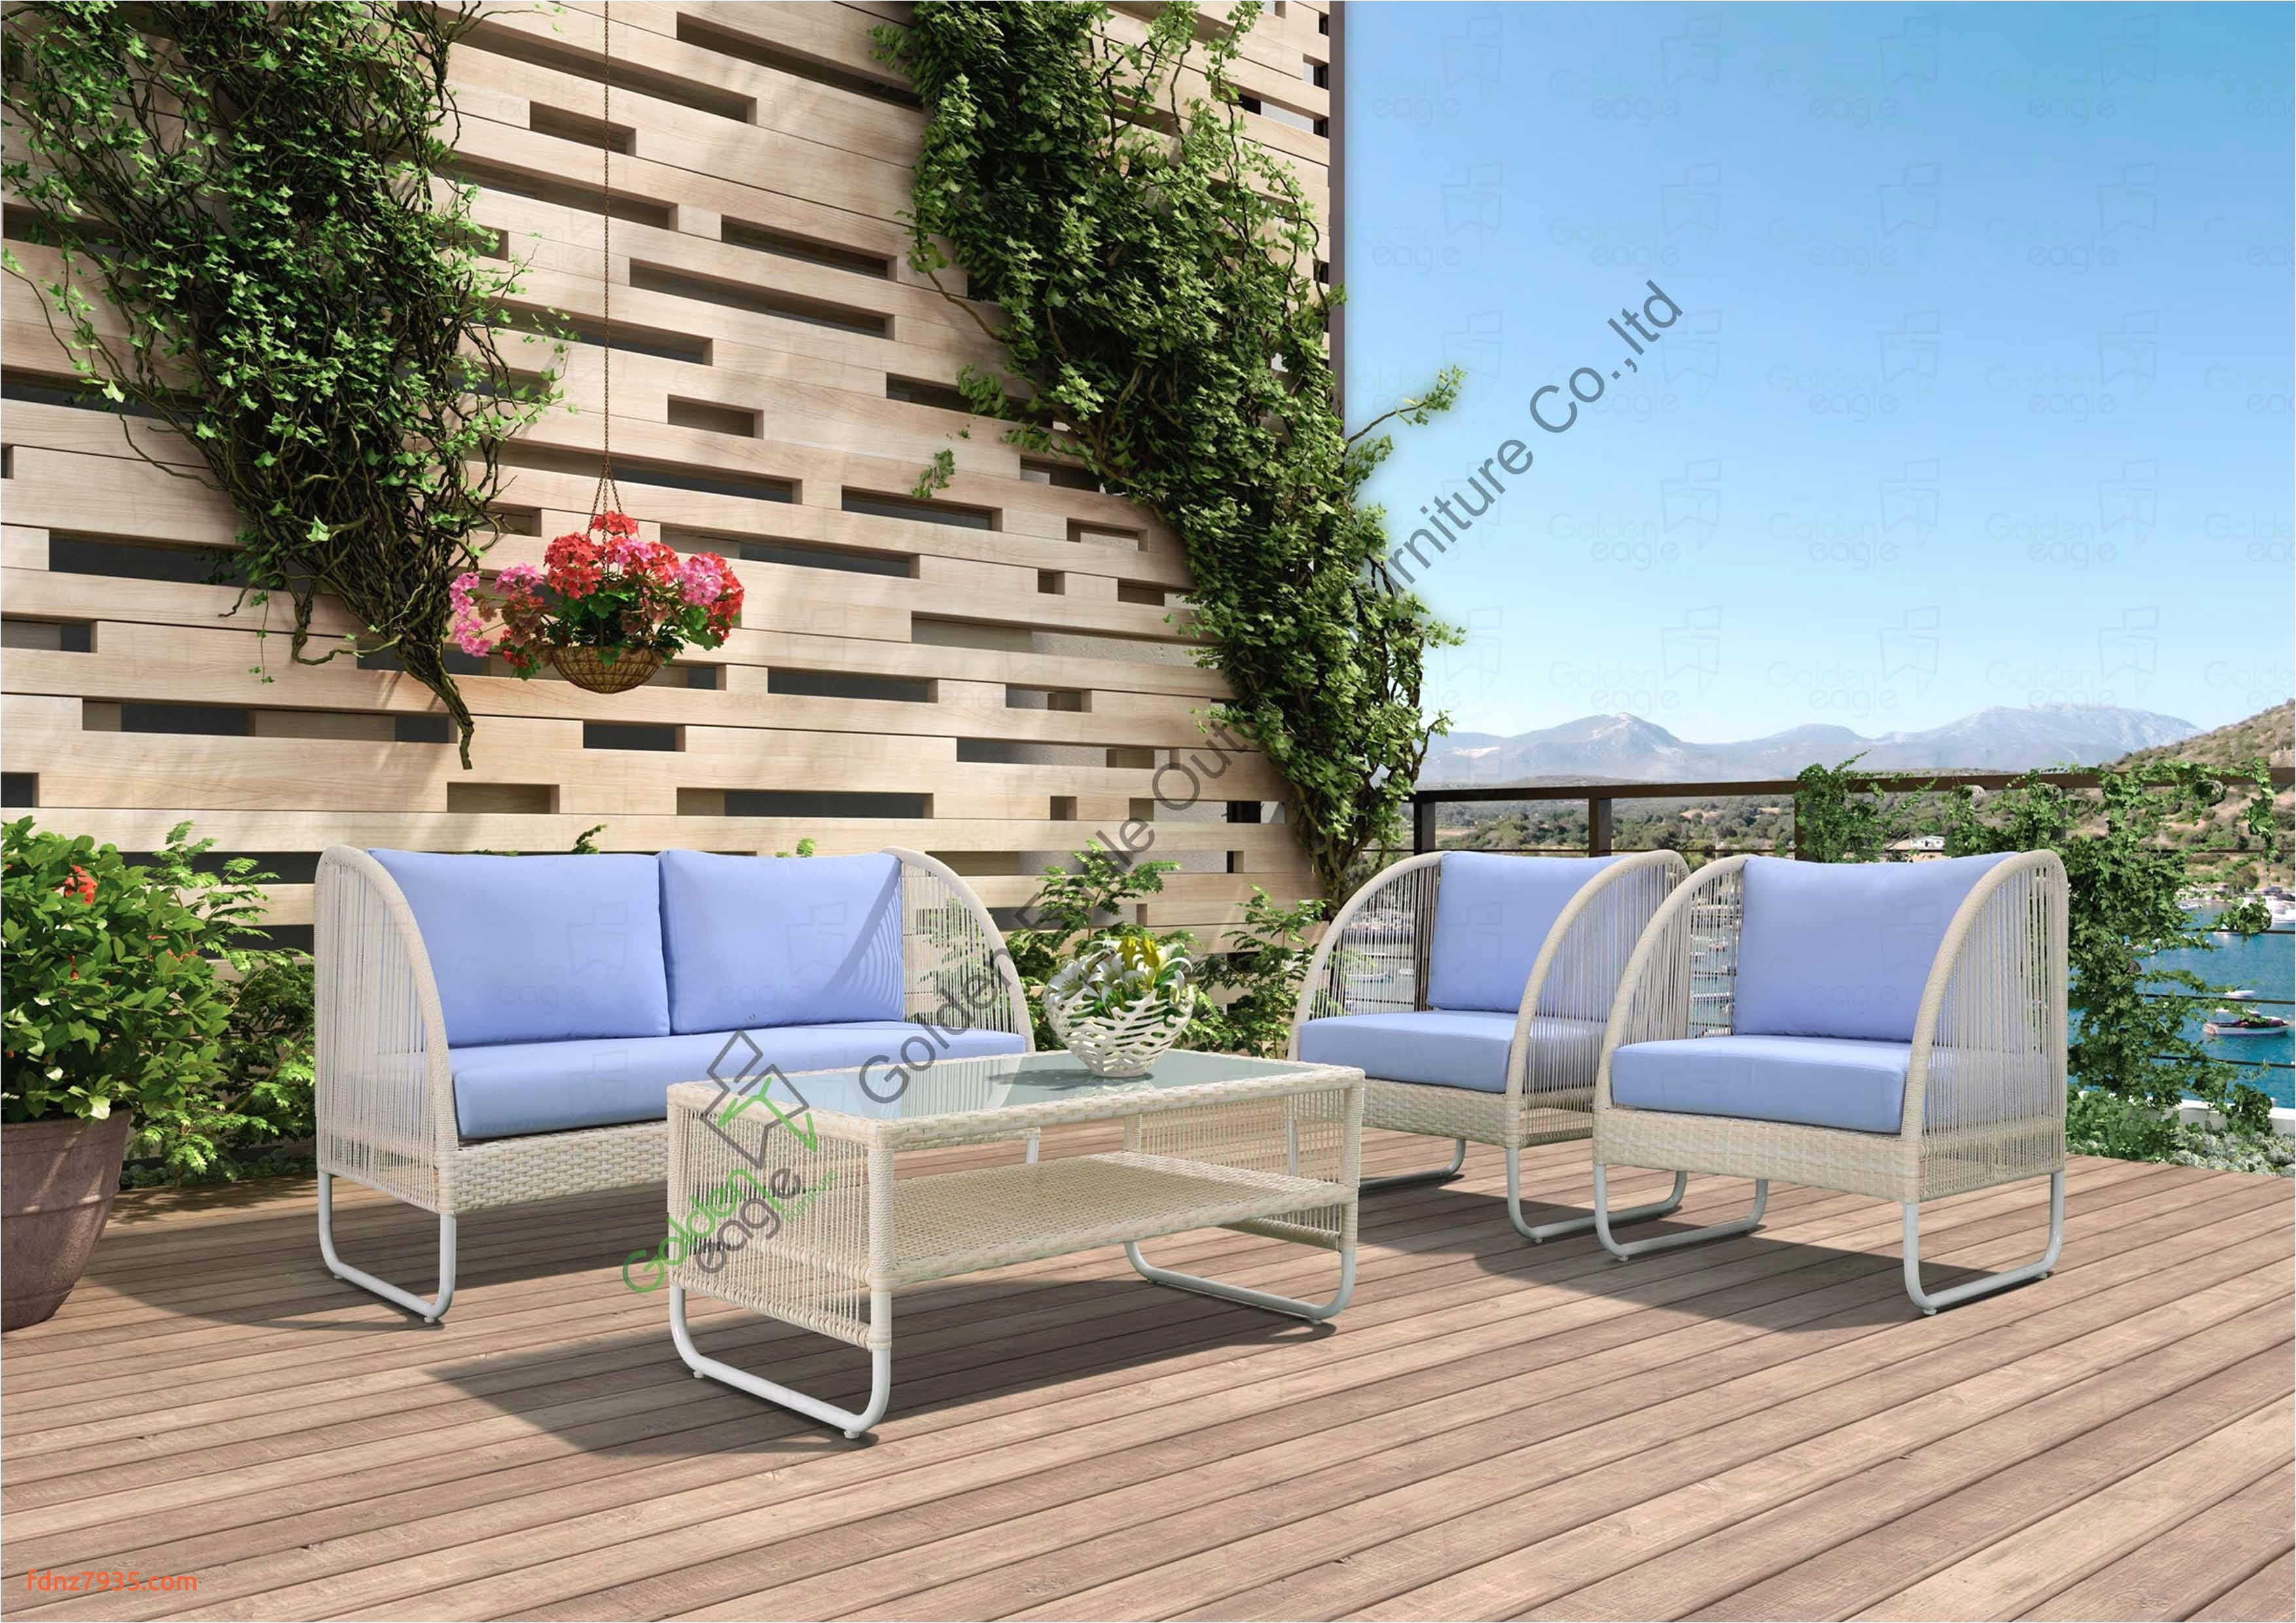 patio furniture manufacturers hd high top patio furniture lovely wicker outdoor sofa 0d patio chairs